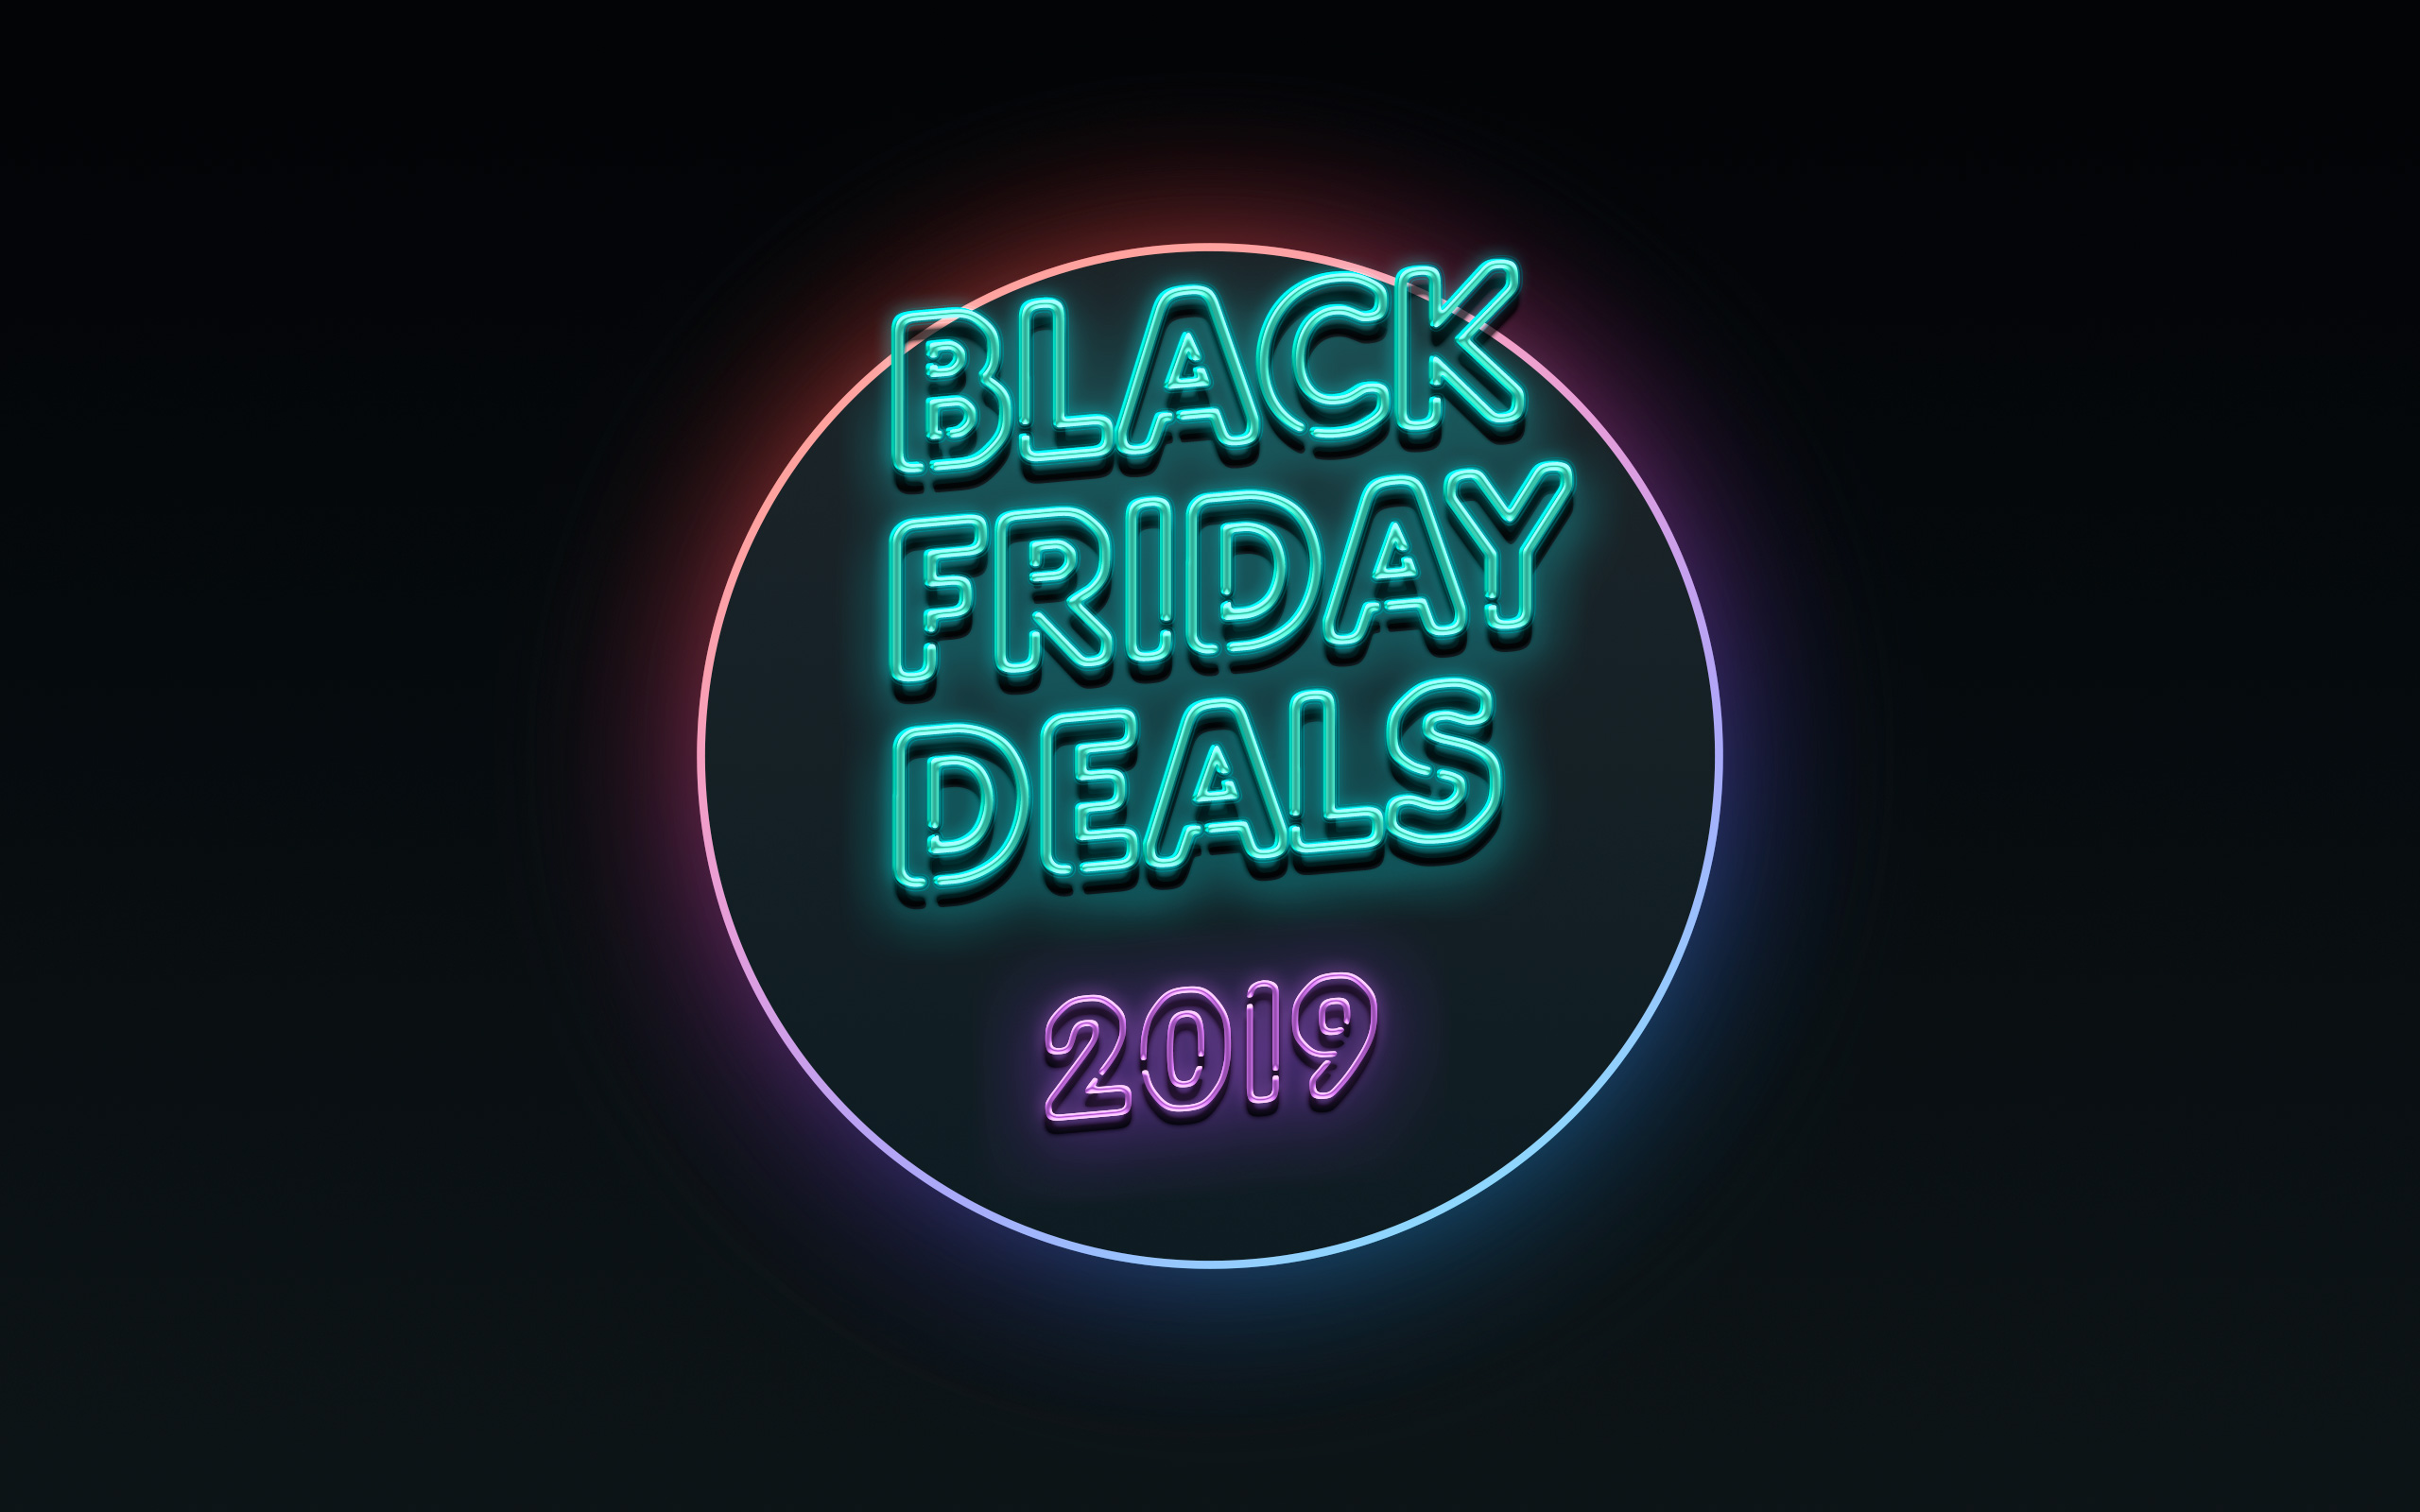 Our Favorite 2019 Black Friday Deals